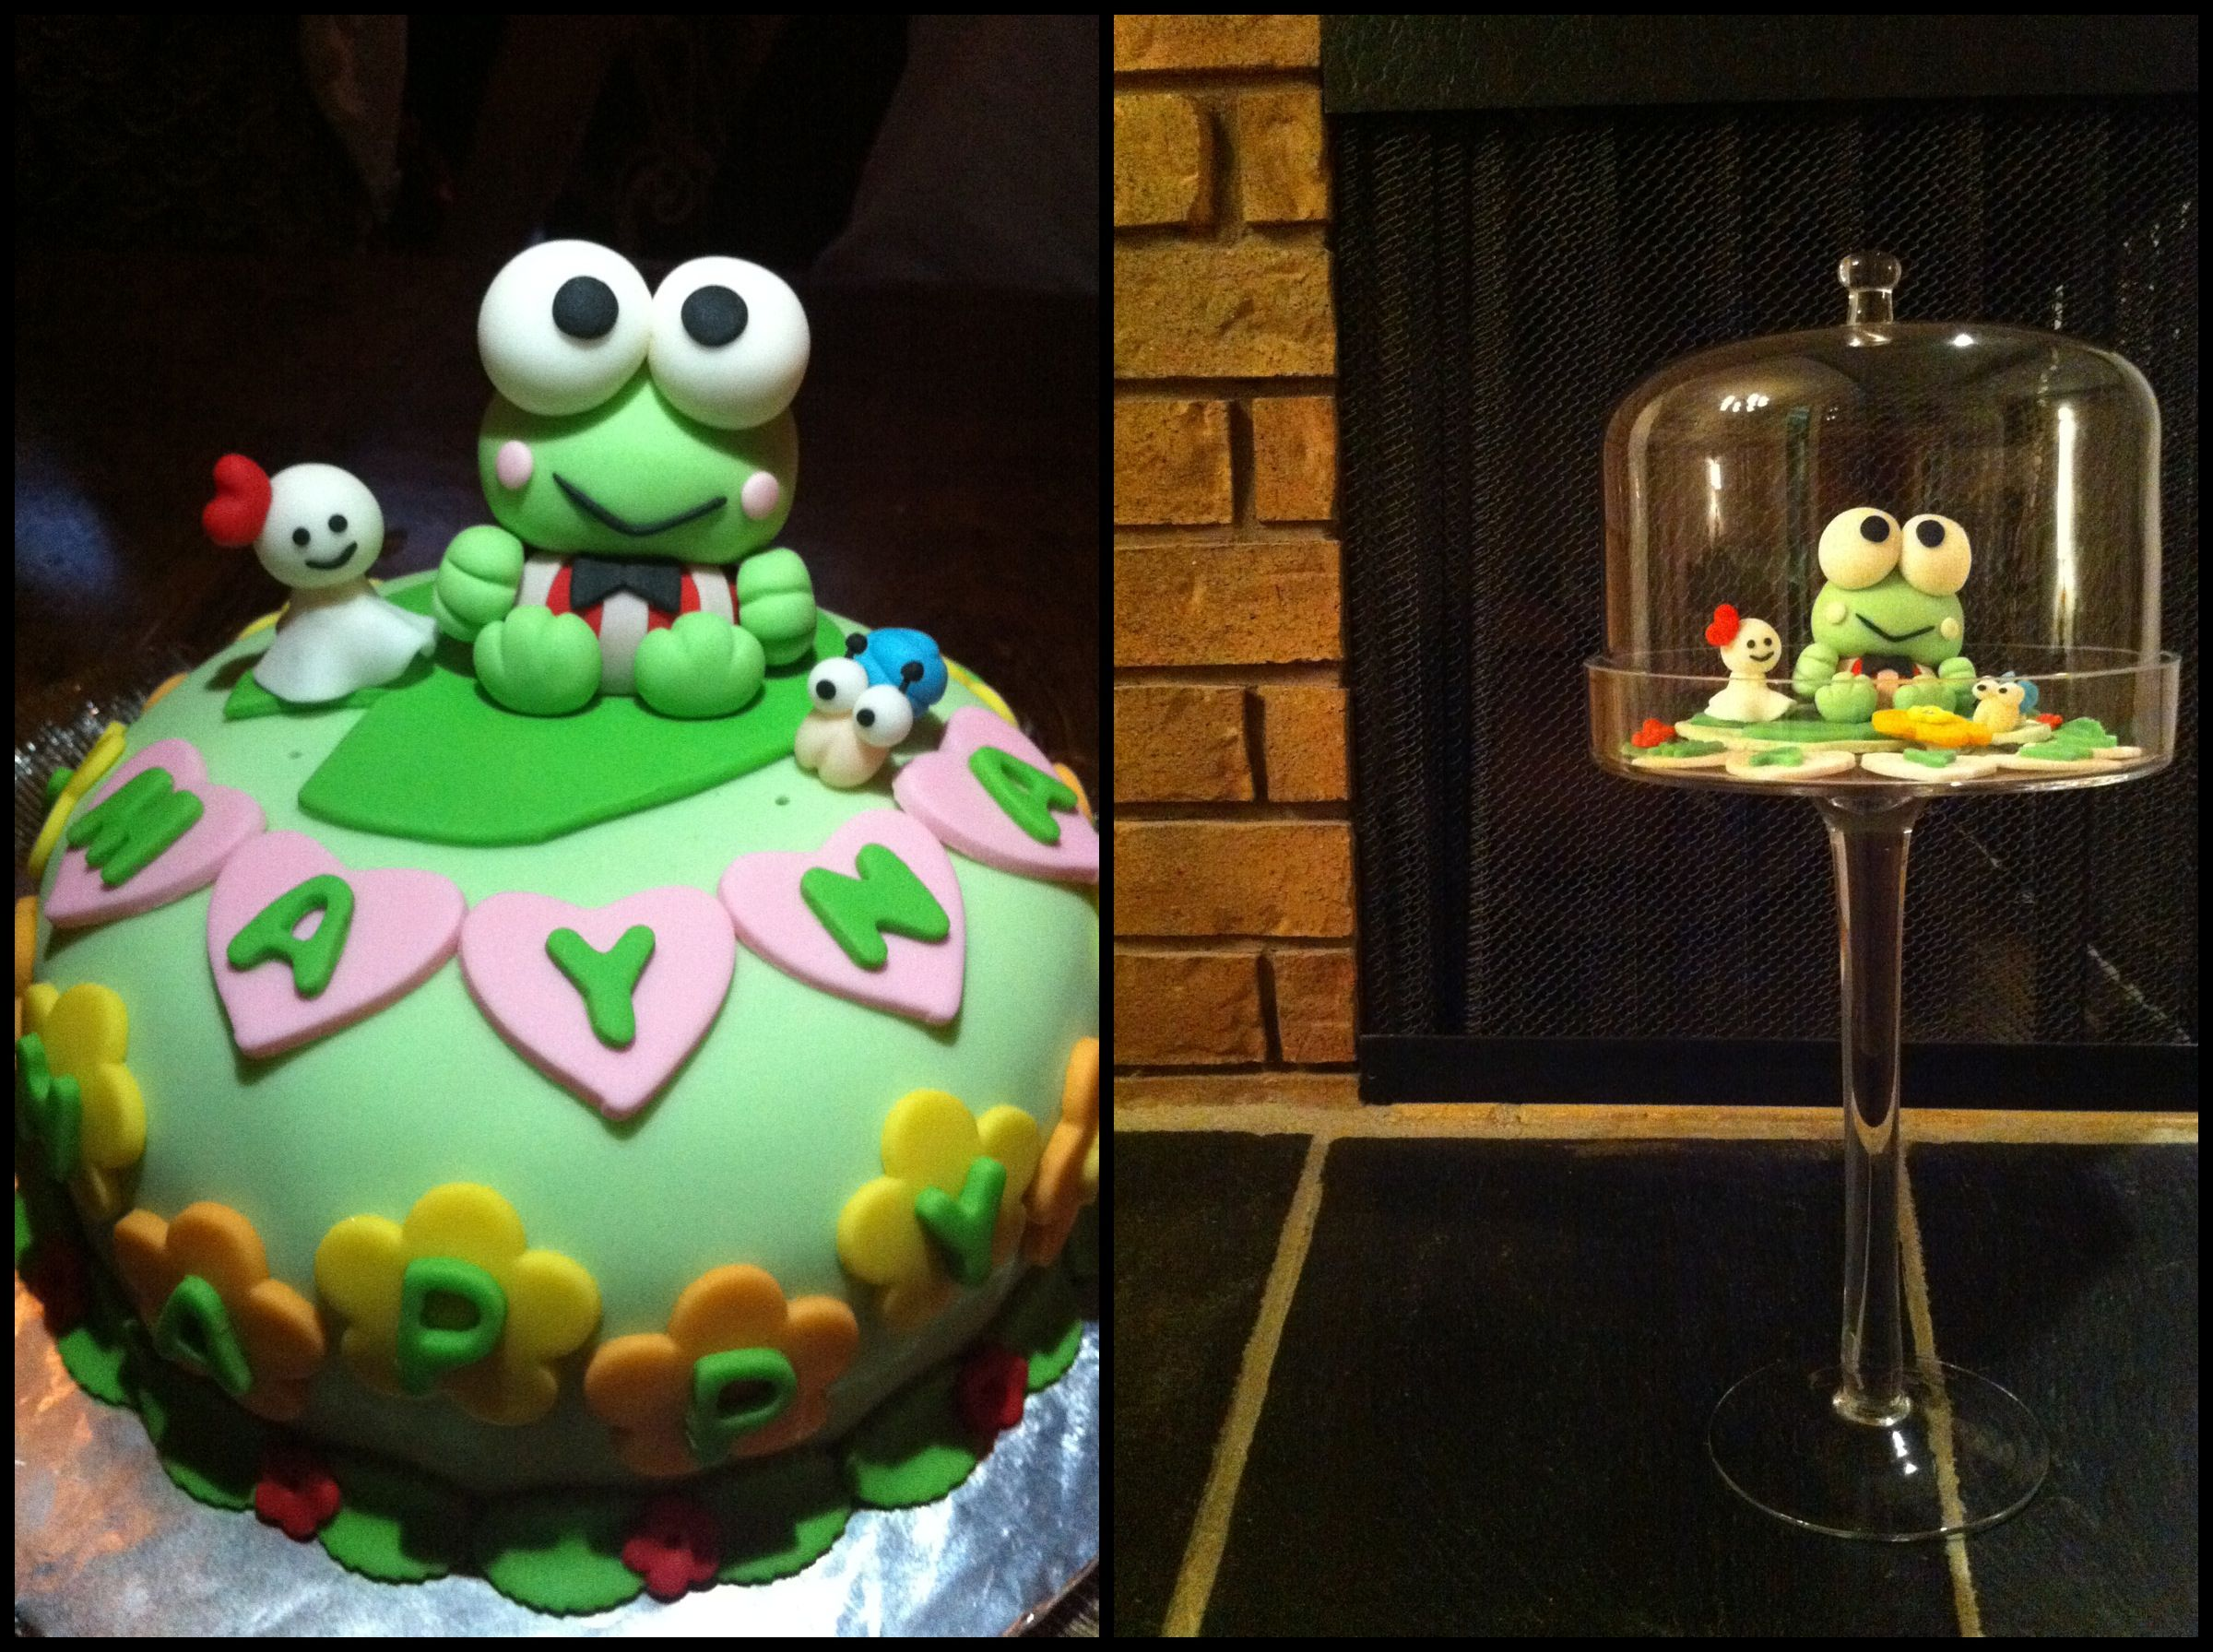 Keroppi Fondant In A Glass Cake Stand Makes For Displaying